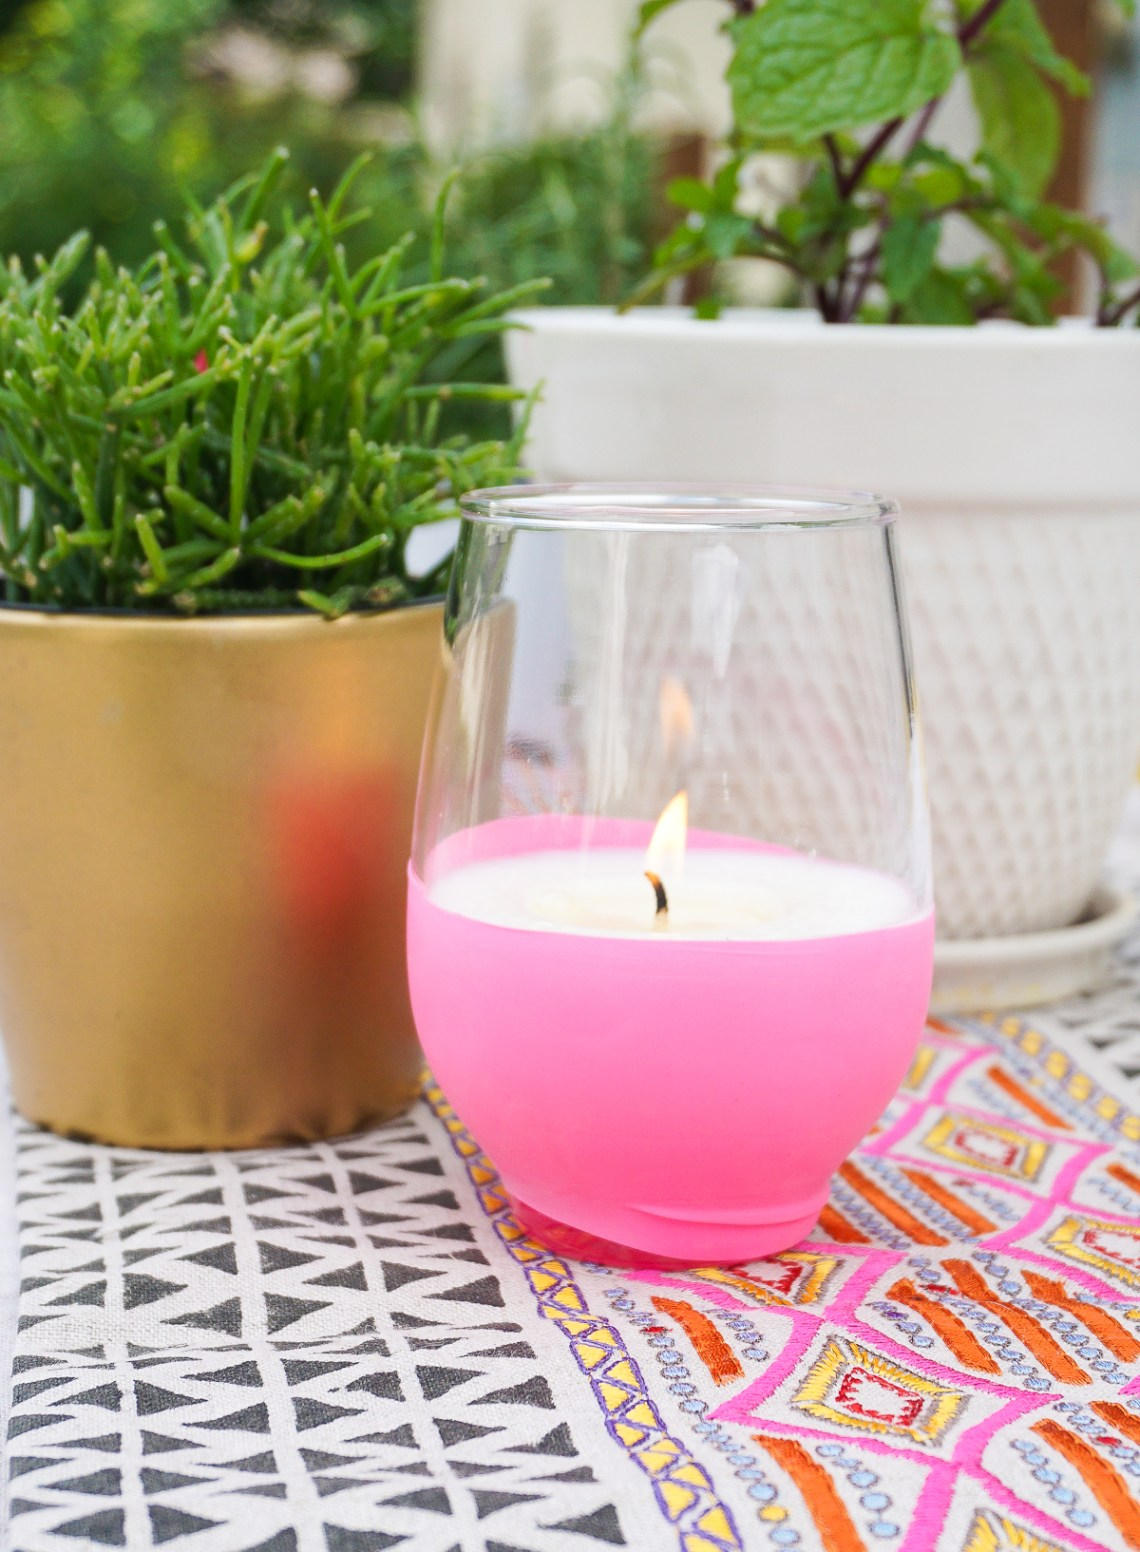 Keep the backyard bugs at bay with these easy DIY citronella candles made with essential oil and soy wax. Click the link to learn how to make them!